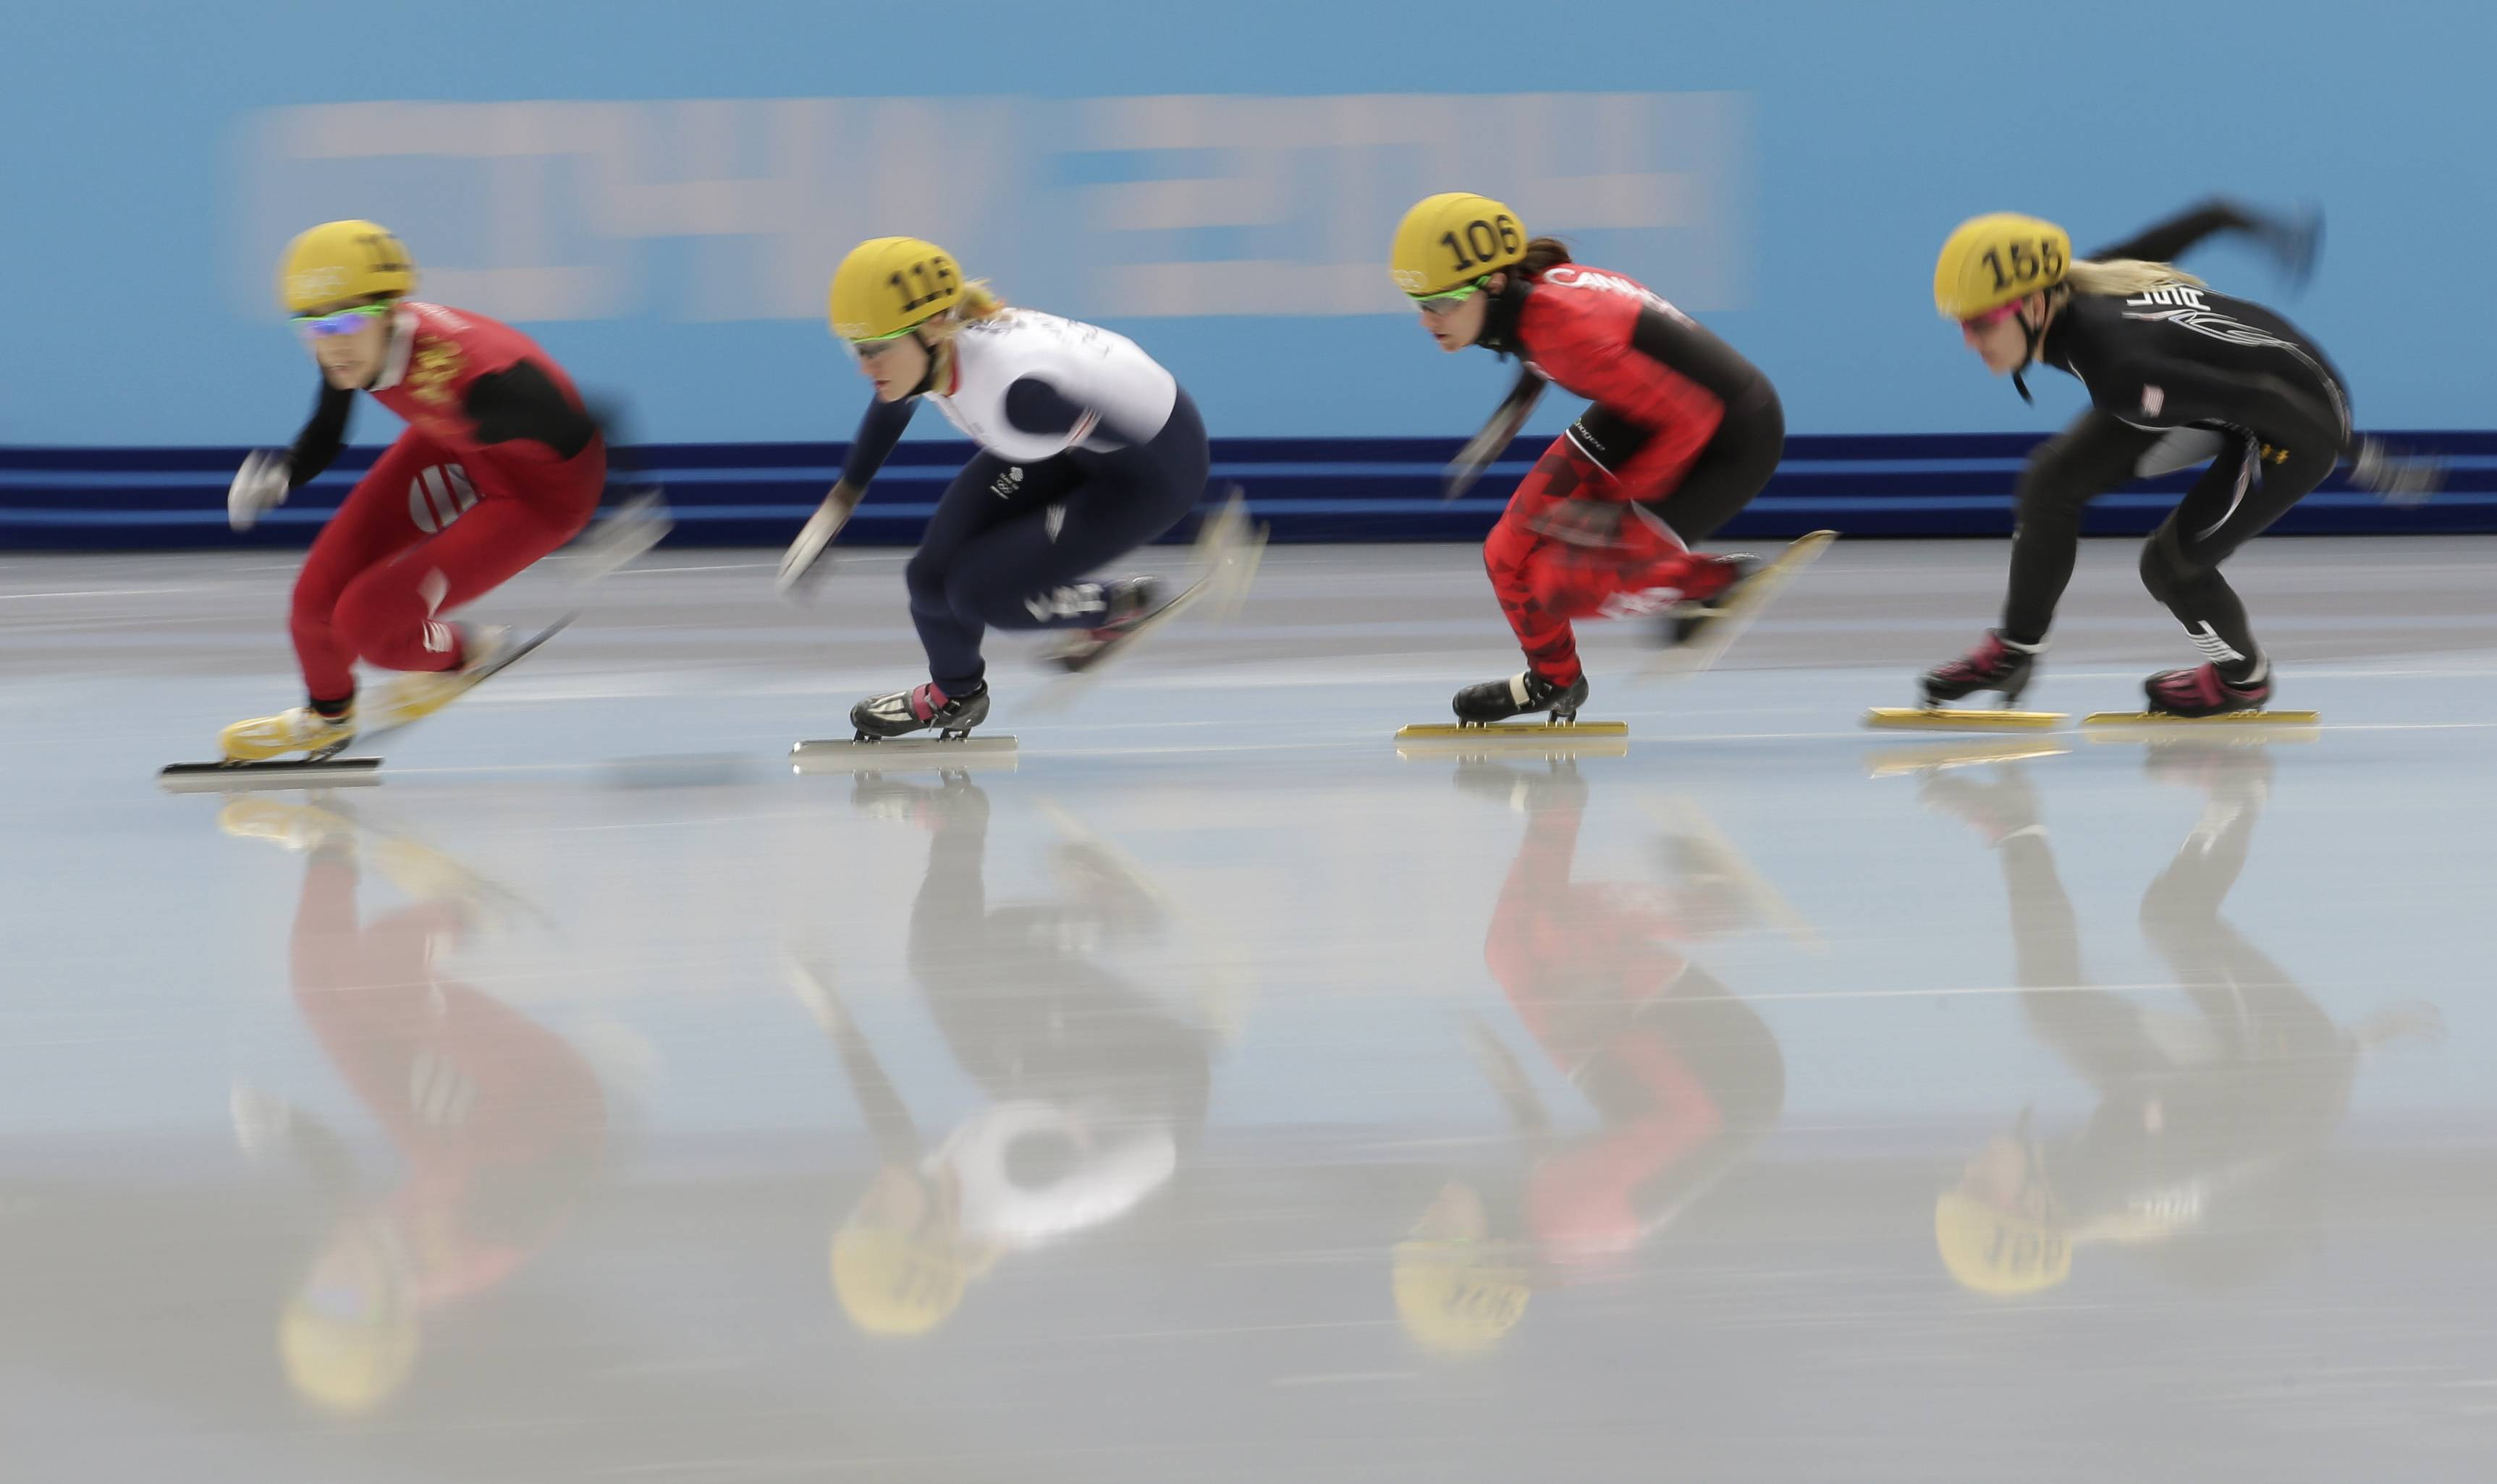 From left, Fan Kexin of China, Elise Christie of Britain, Jessica Hewitt of Canada and Emily Scott of the United States compete in a women's 500m short track speedskating quarterfinal.